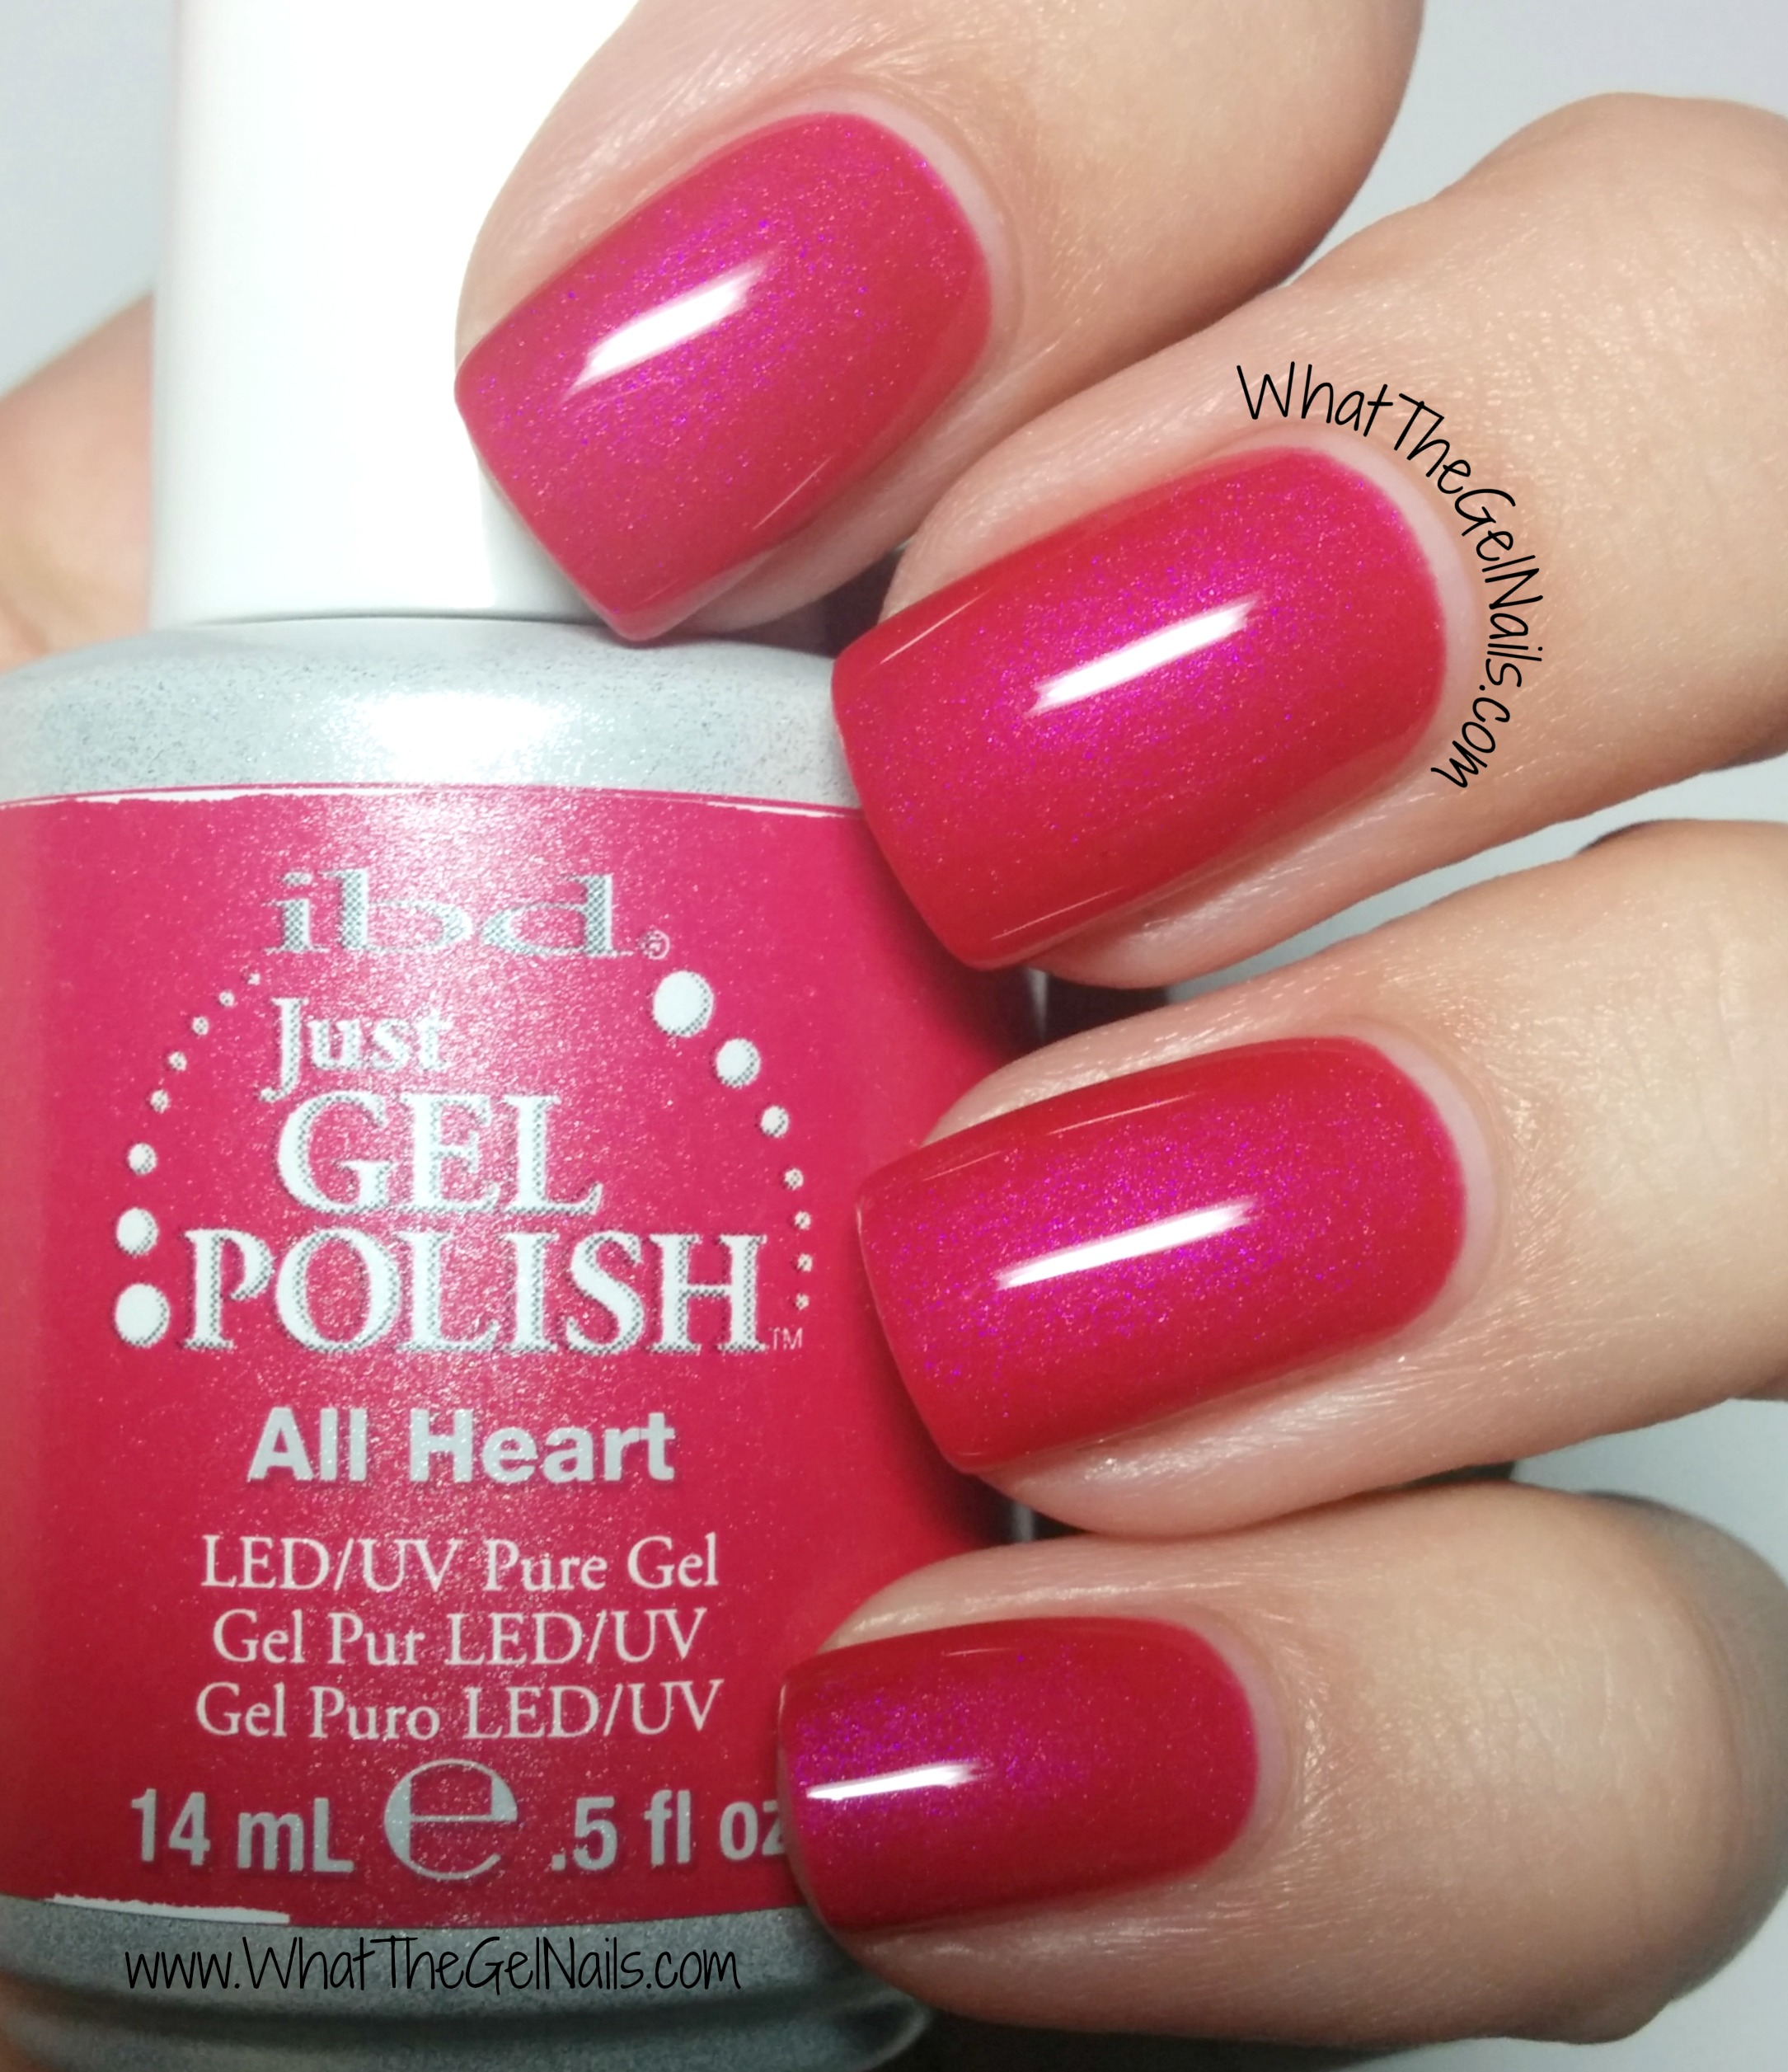 Nail Colors: 4 Pink IBD Just Gel Nail Polish Colors